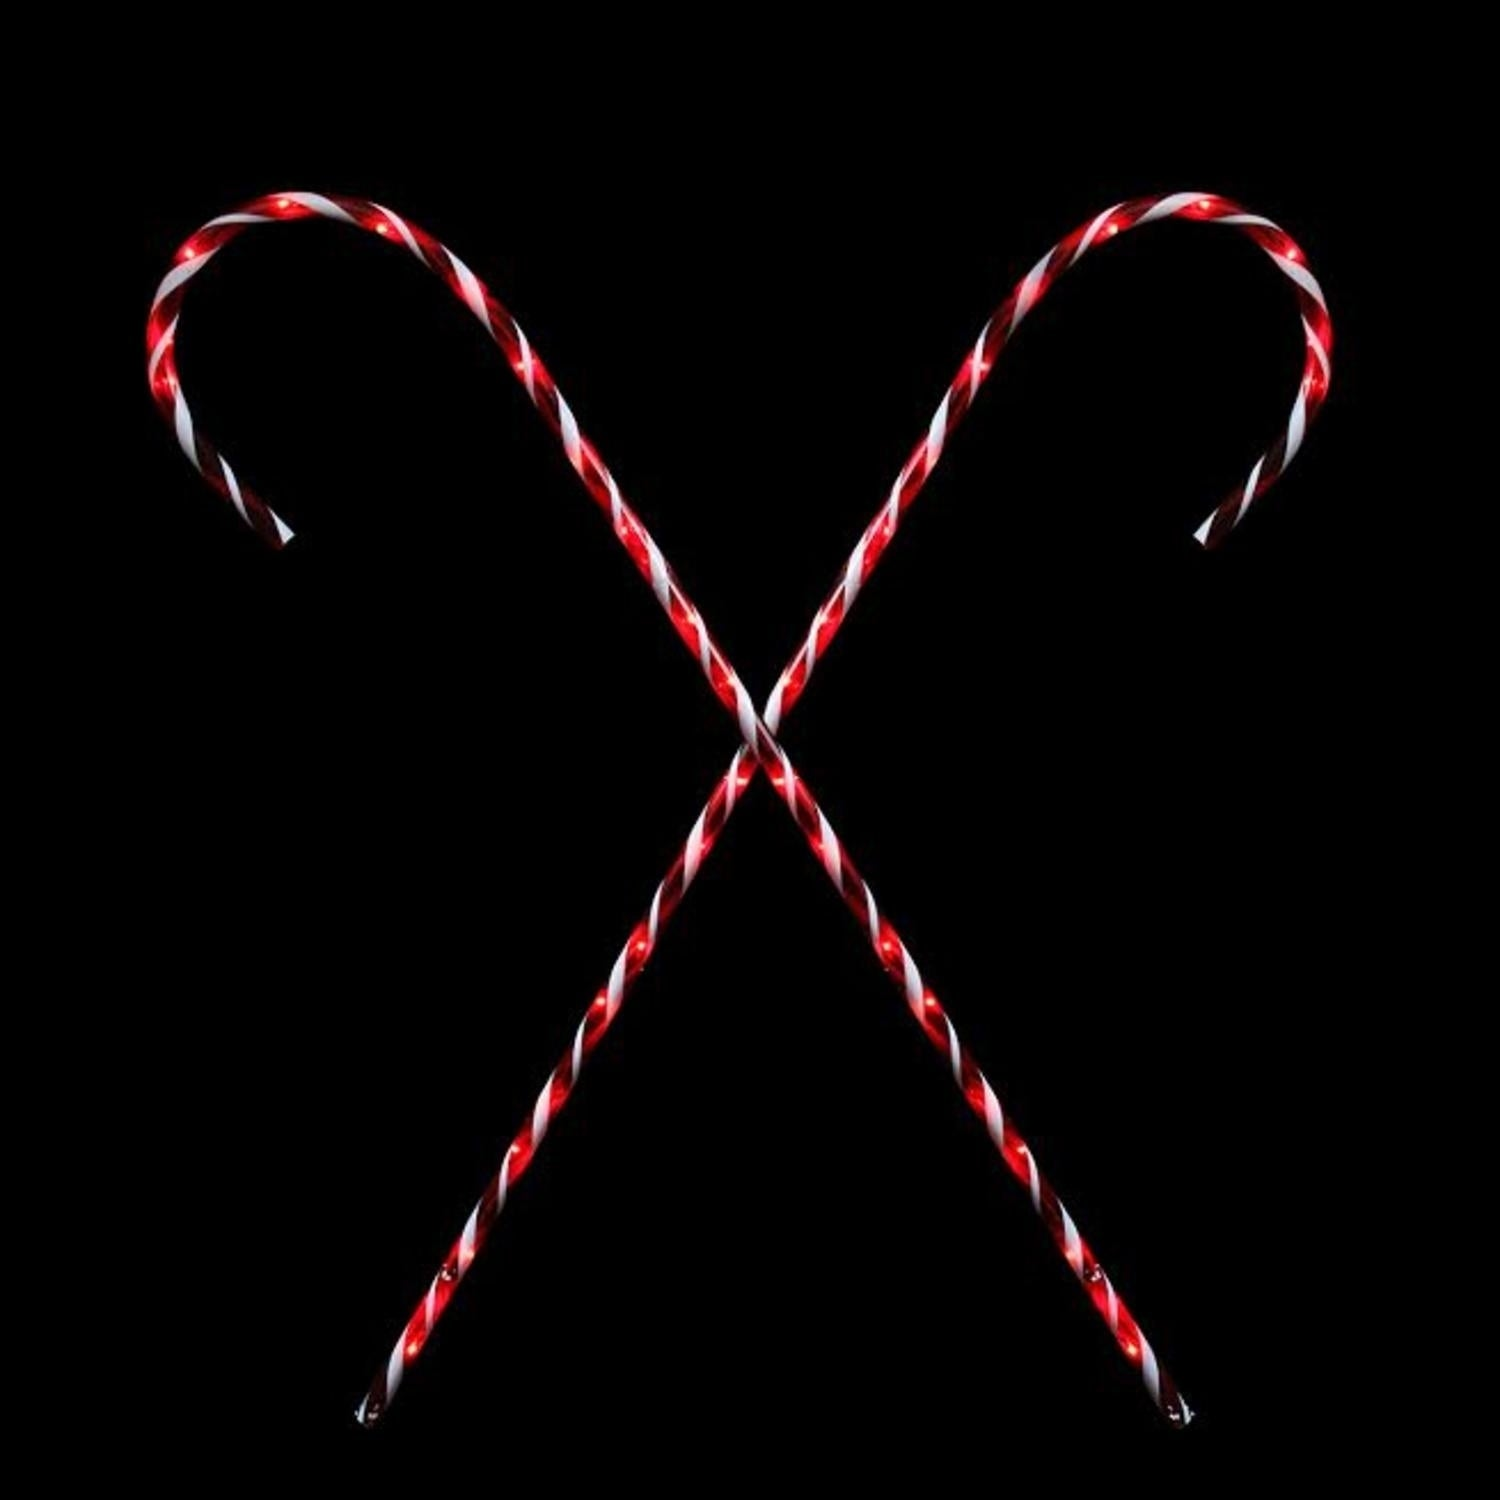 Sienna Set of 2 Peppermint Twist Giant Lighted Candy Cane...